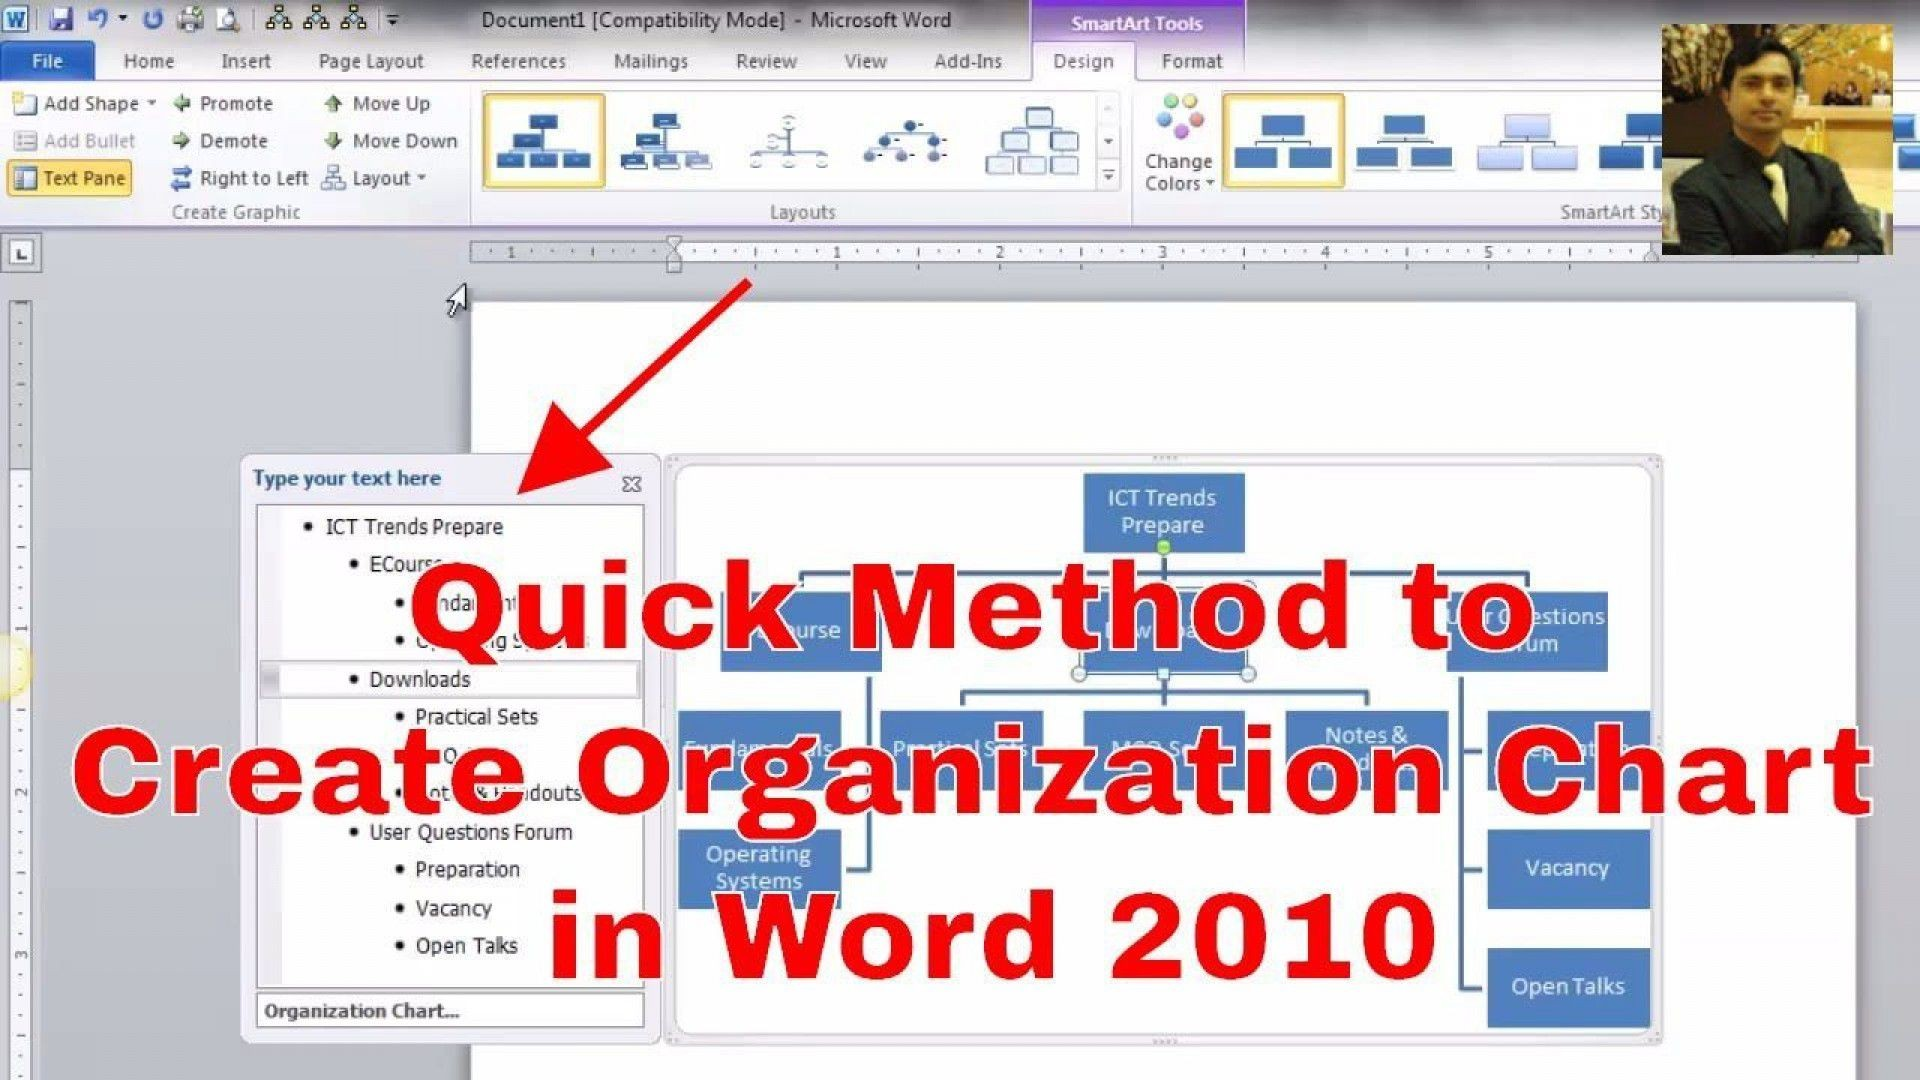 000 Awesome Microsoft Office Organizational Chart Template 2010 High Definition 1920